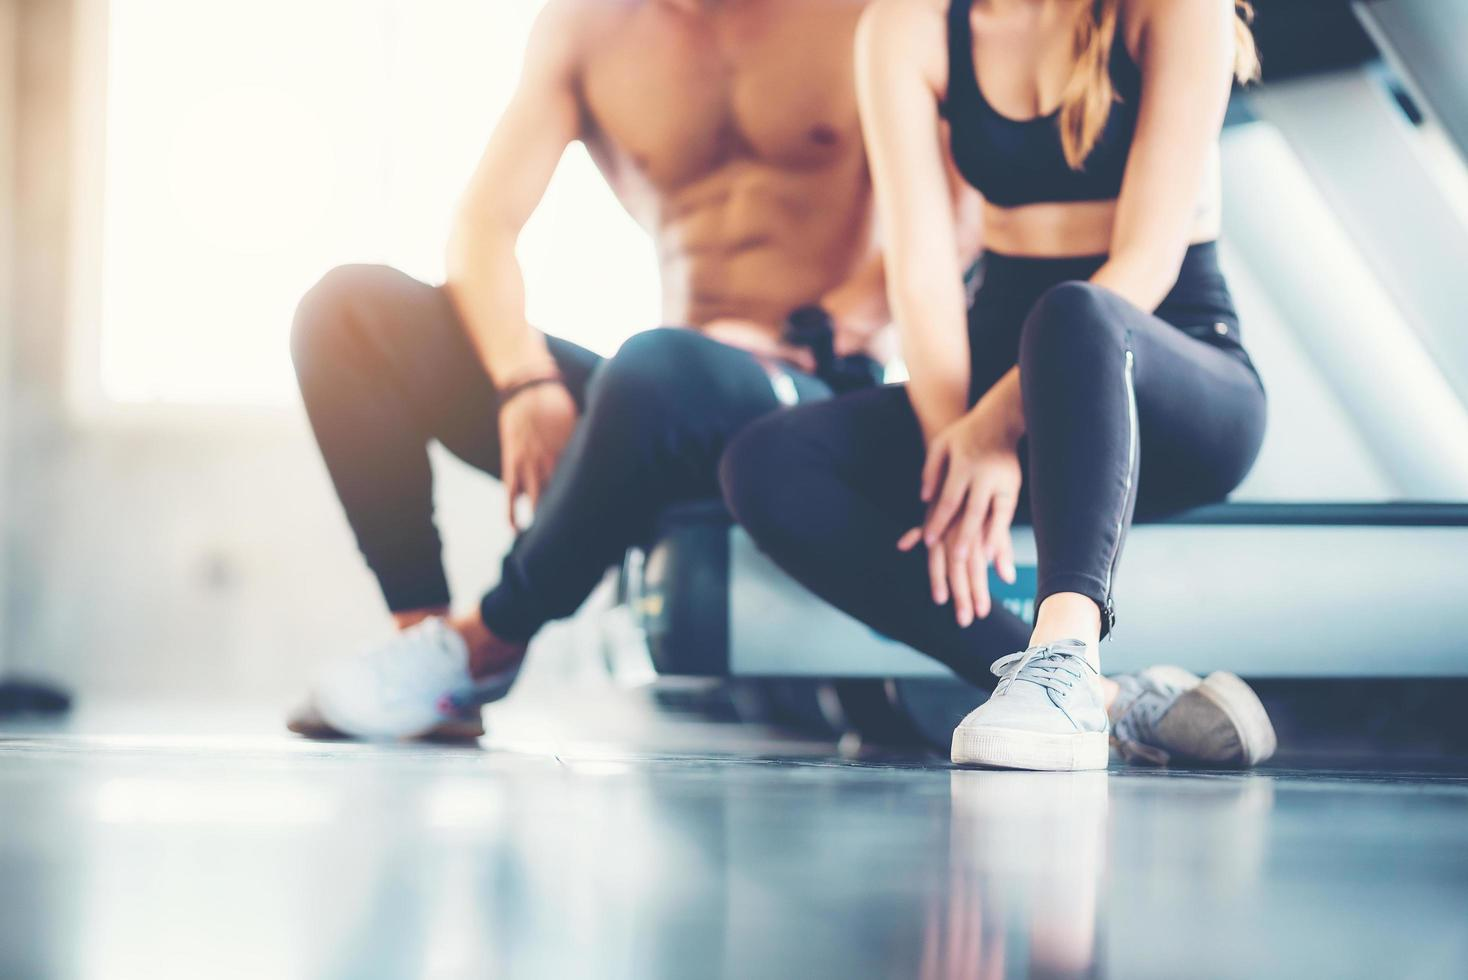 Unfocused image of man and woman in sportswear seated at a gym with only one shoe in focus photo